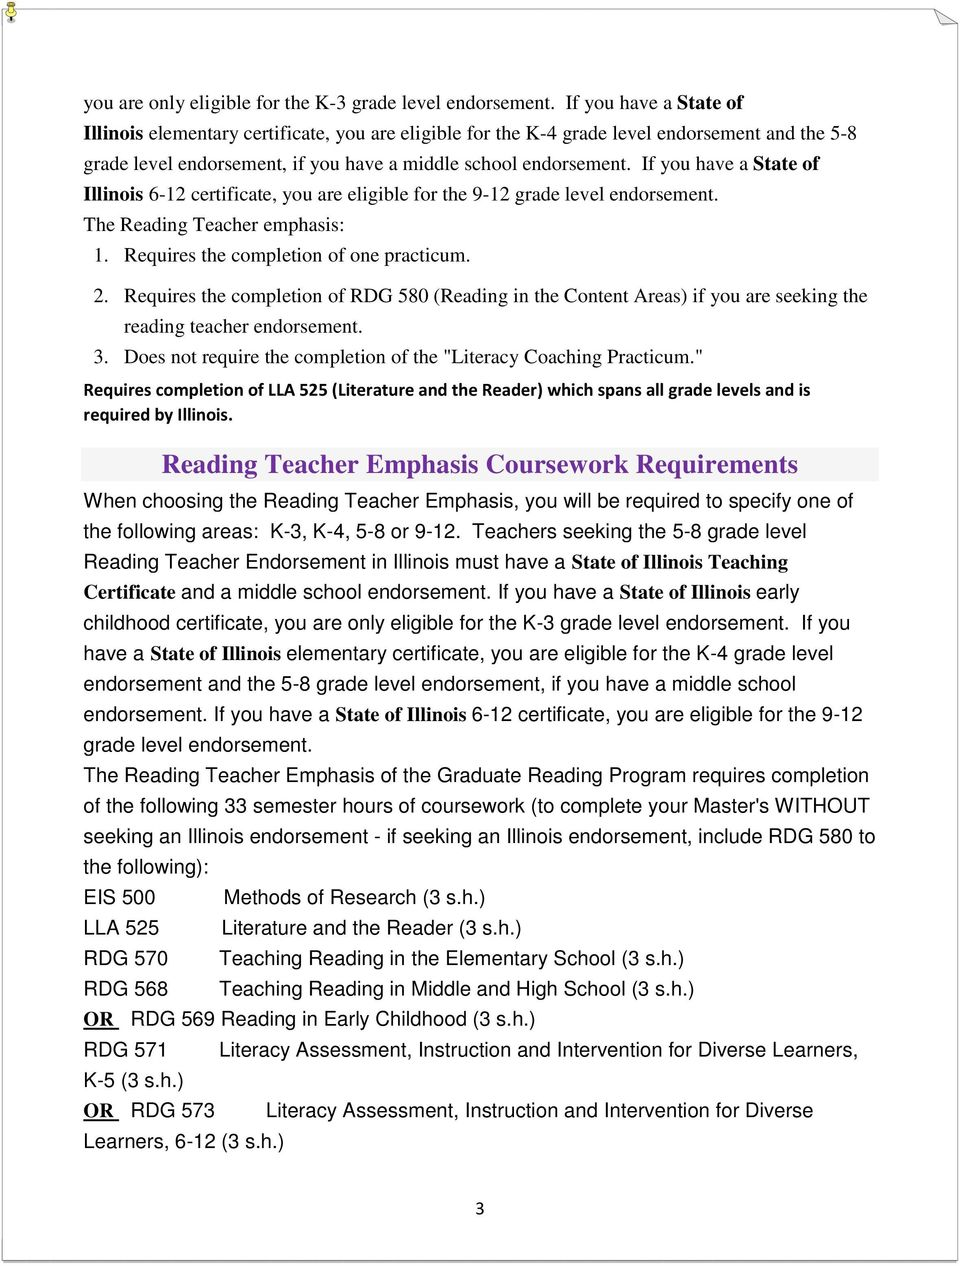 If you have a State of Illinois 6-12 certificate, you are eligible for the 9-12 grade level endorsement. The Reading Teacher emphasis: 1. Requires the completion of one practicum. 2.